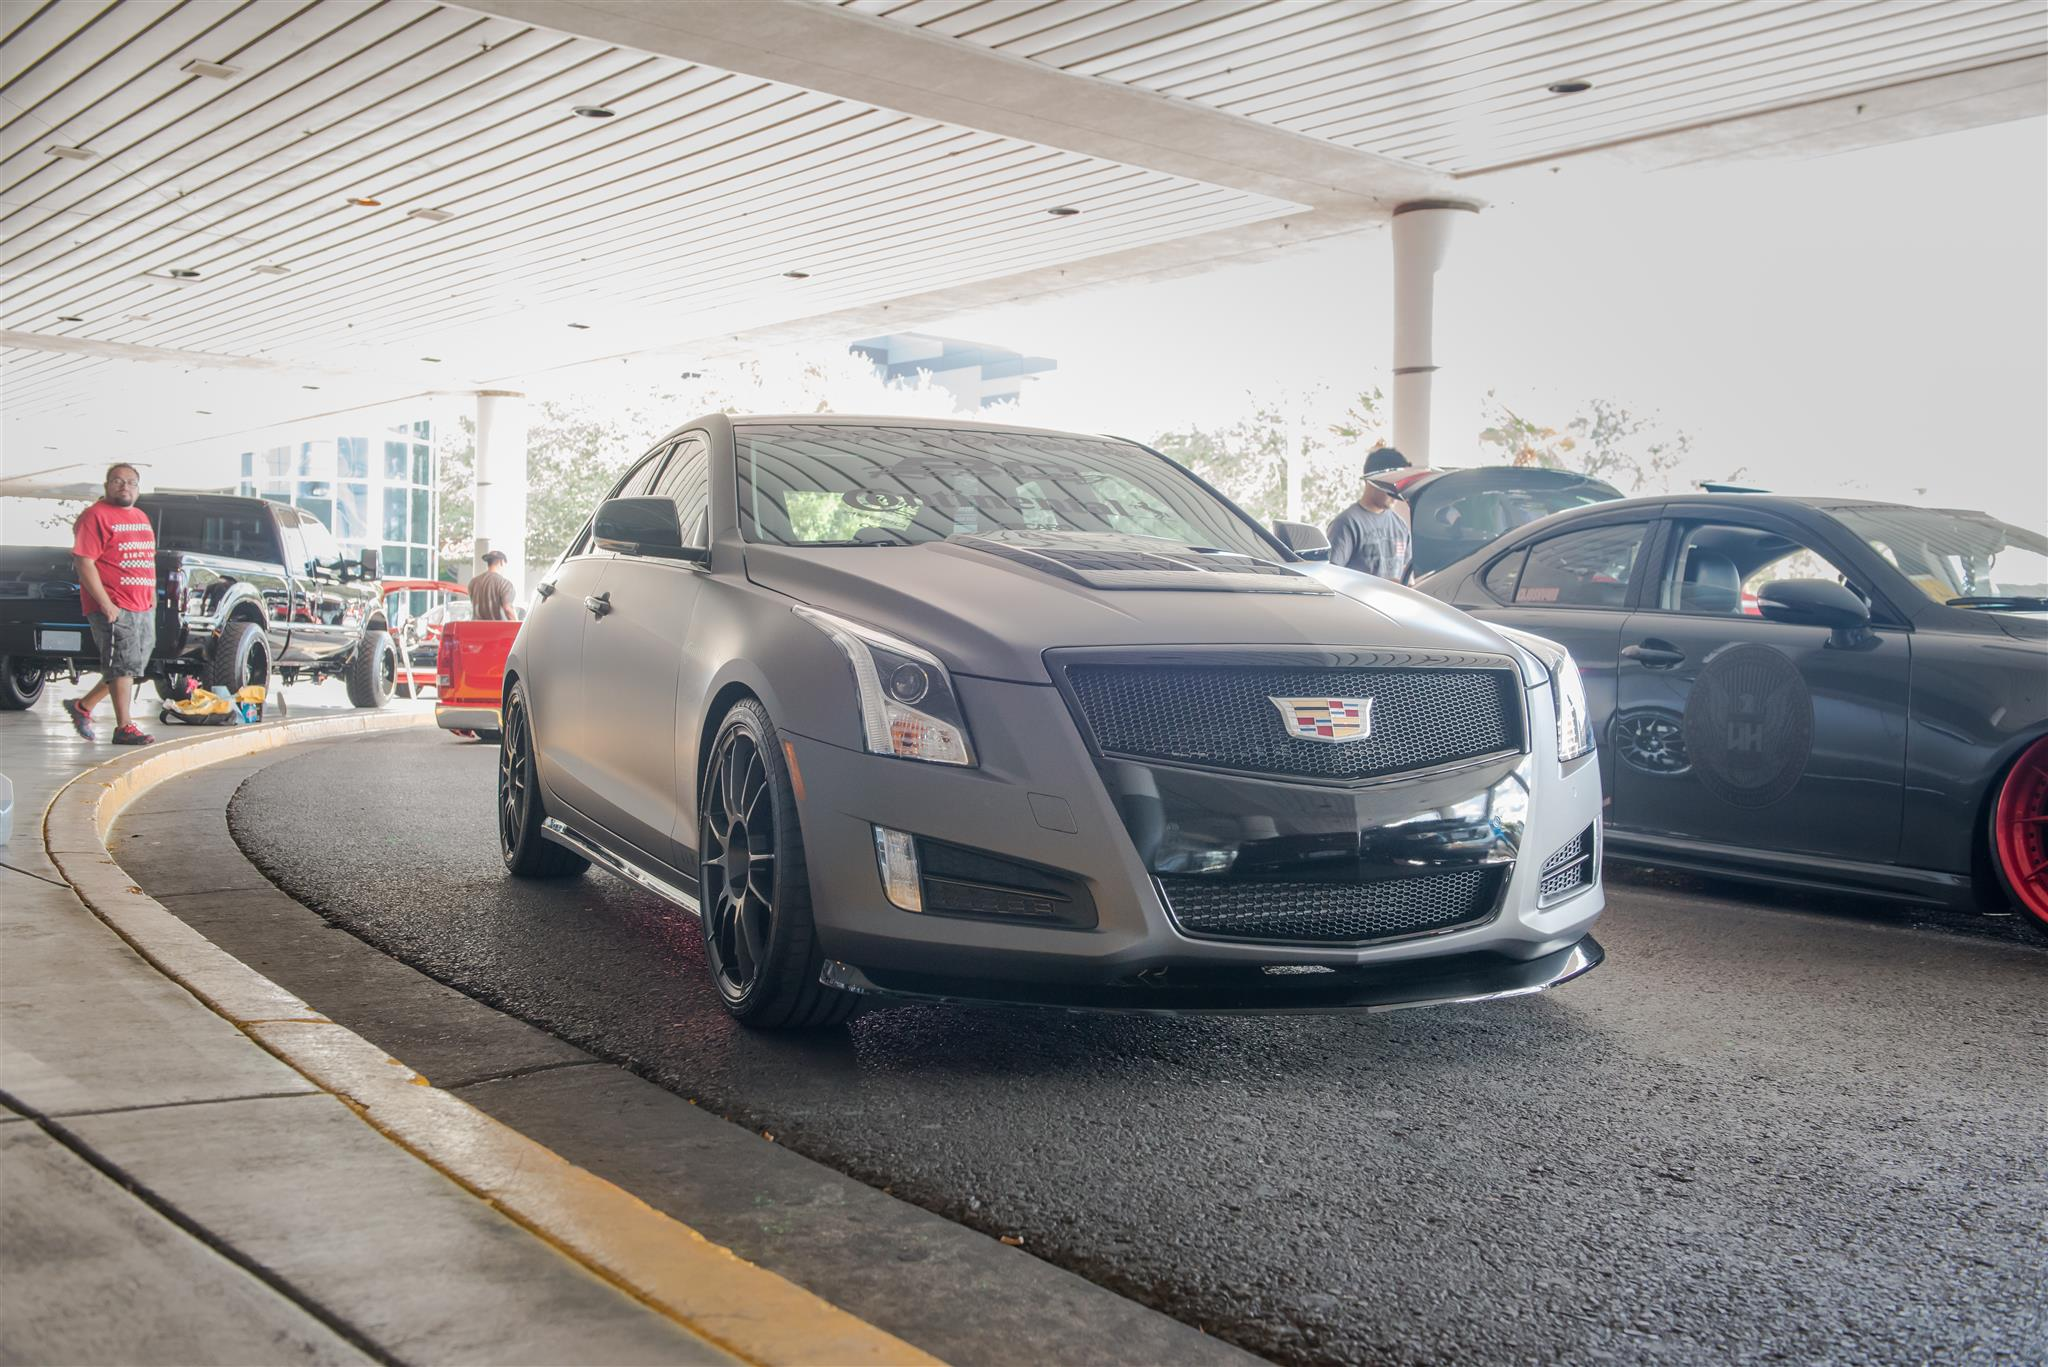 Cadillac - ATS - 2014 - Wheels & Tires - Paint -  Wraps & Body - Interior - Performance